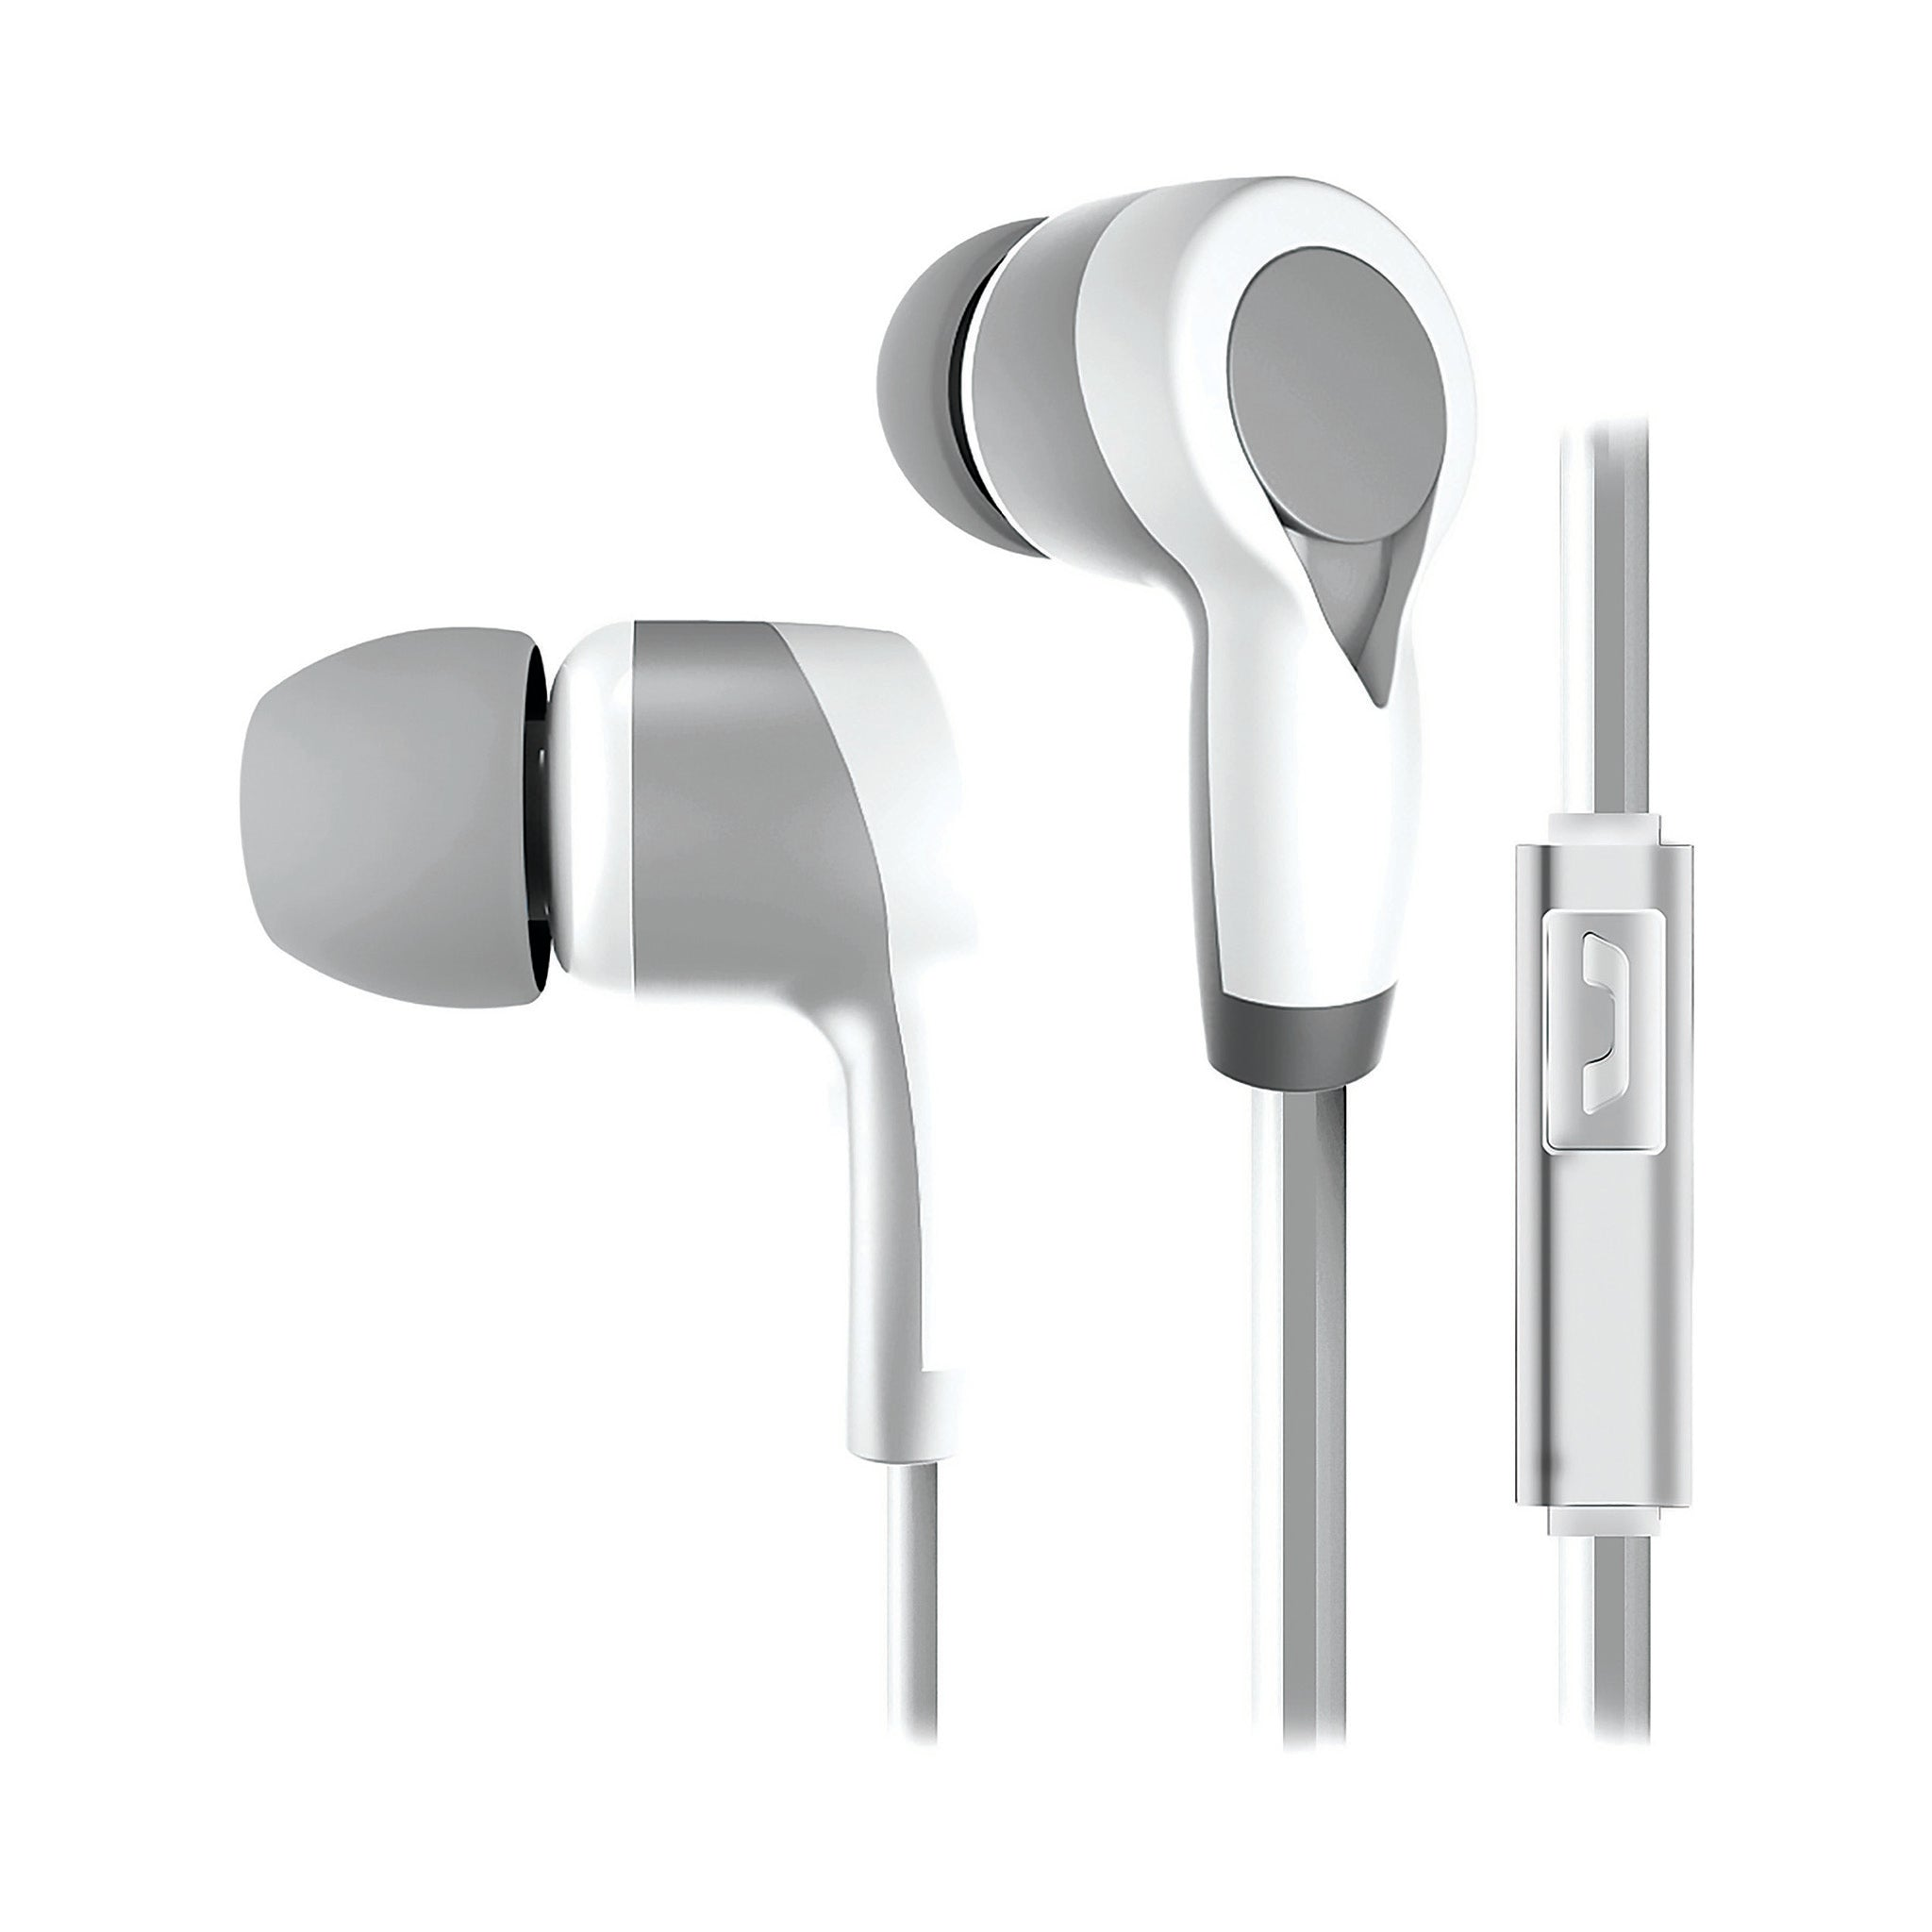 EPICX Stereo Earbuds